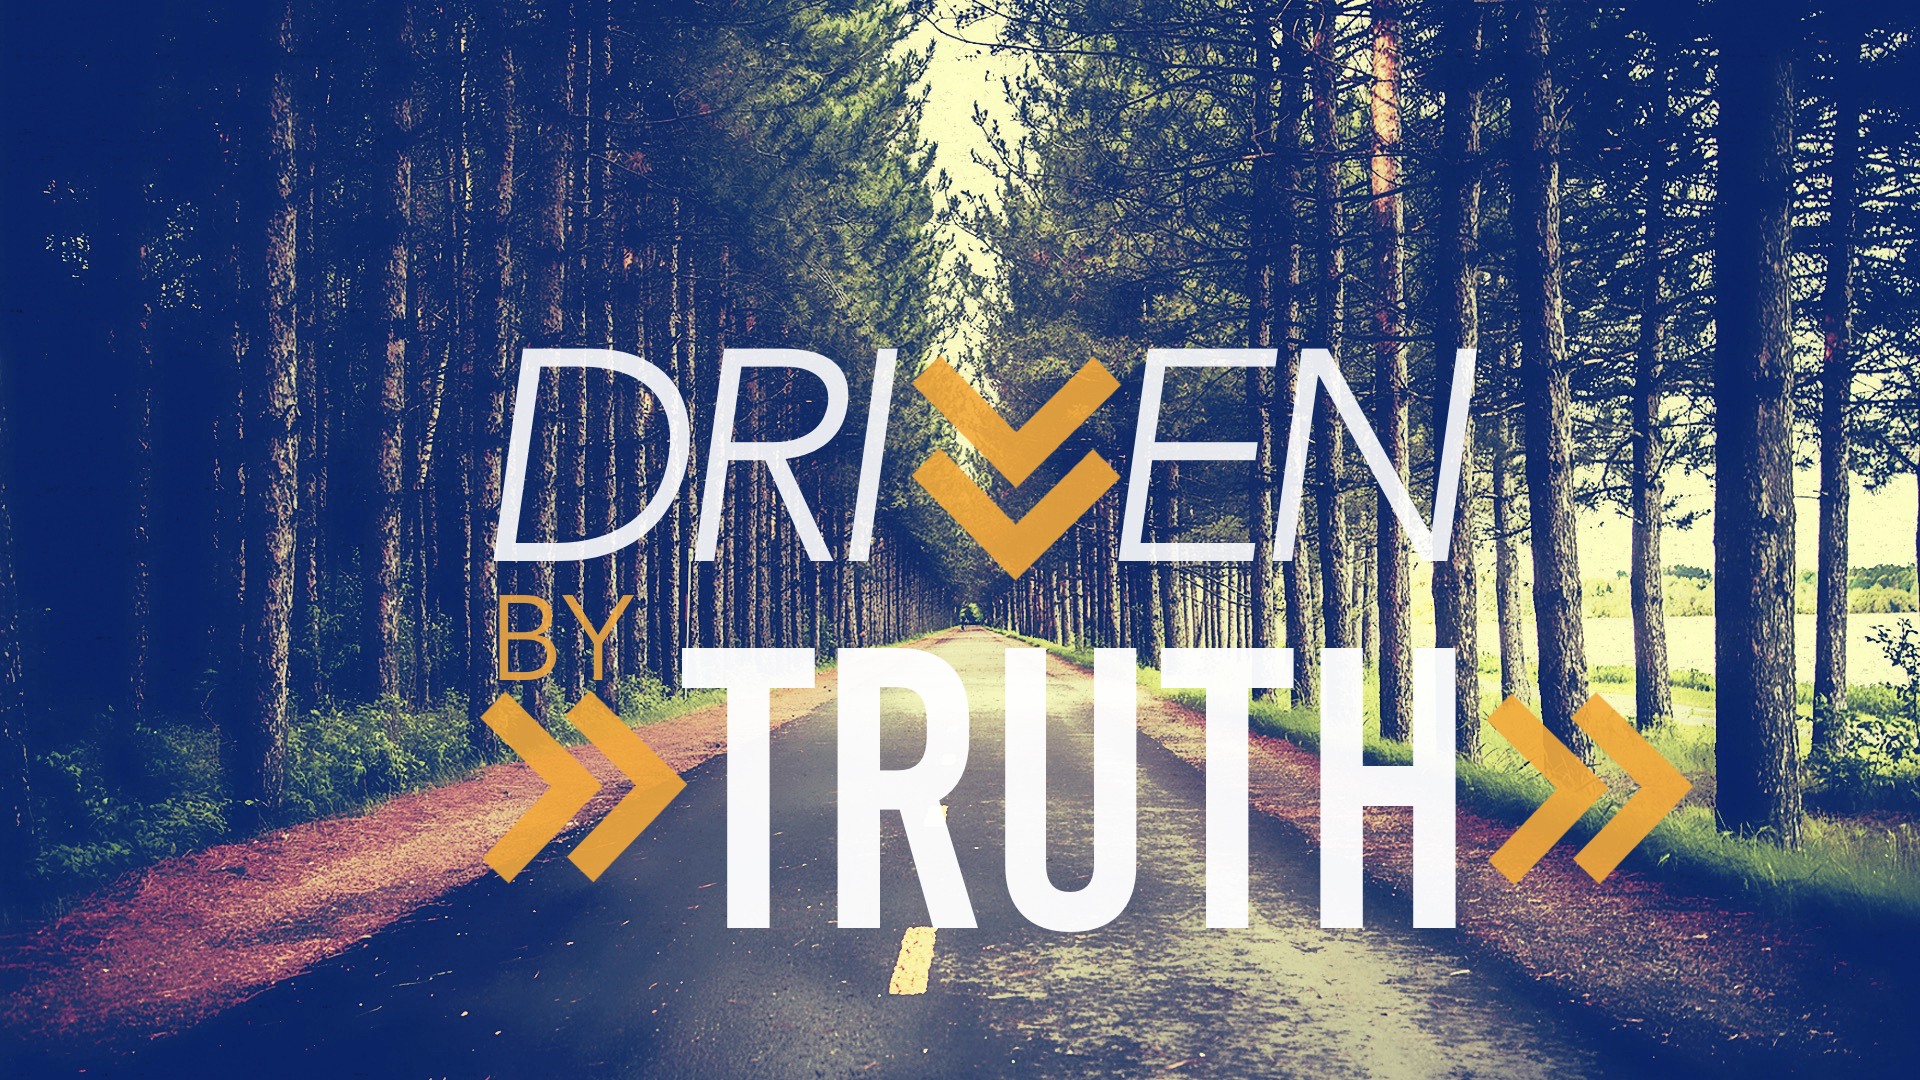 Driven by Truth.004.jpeg